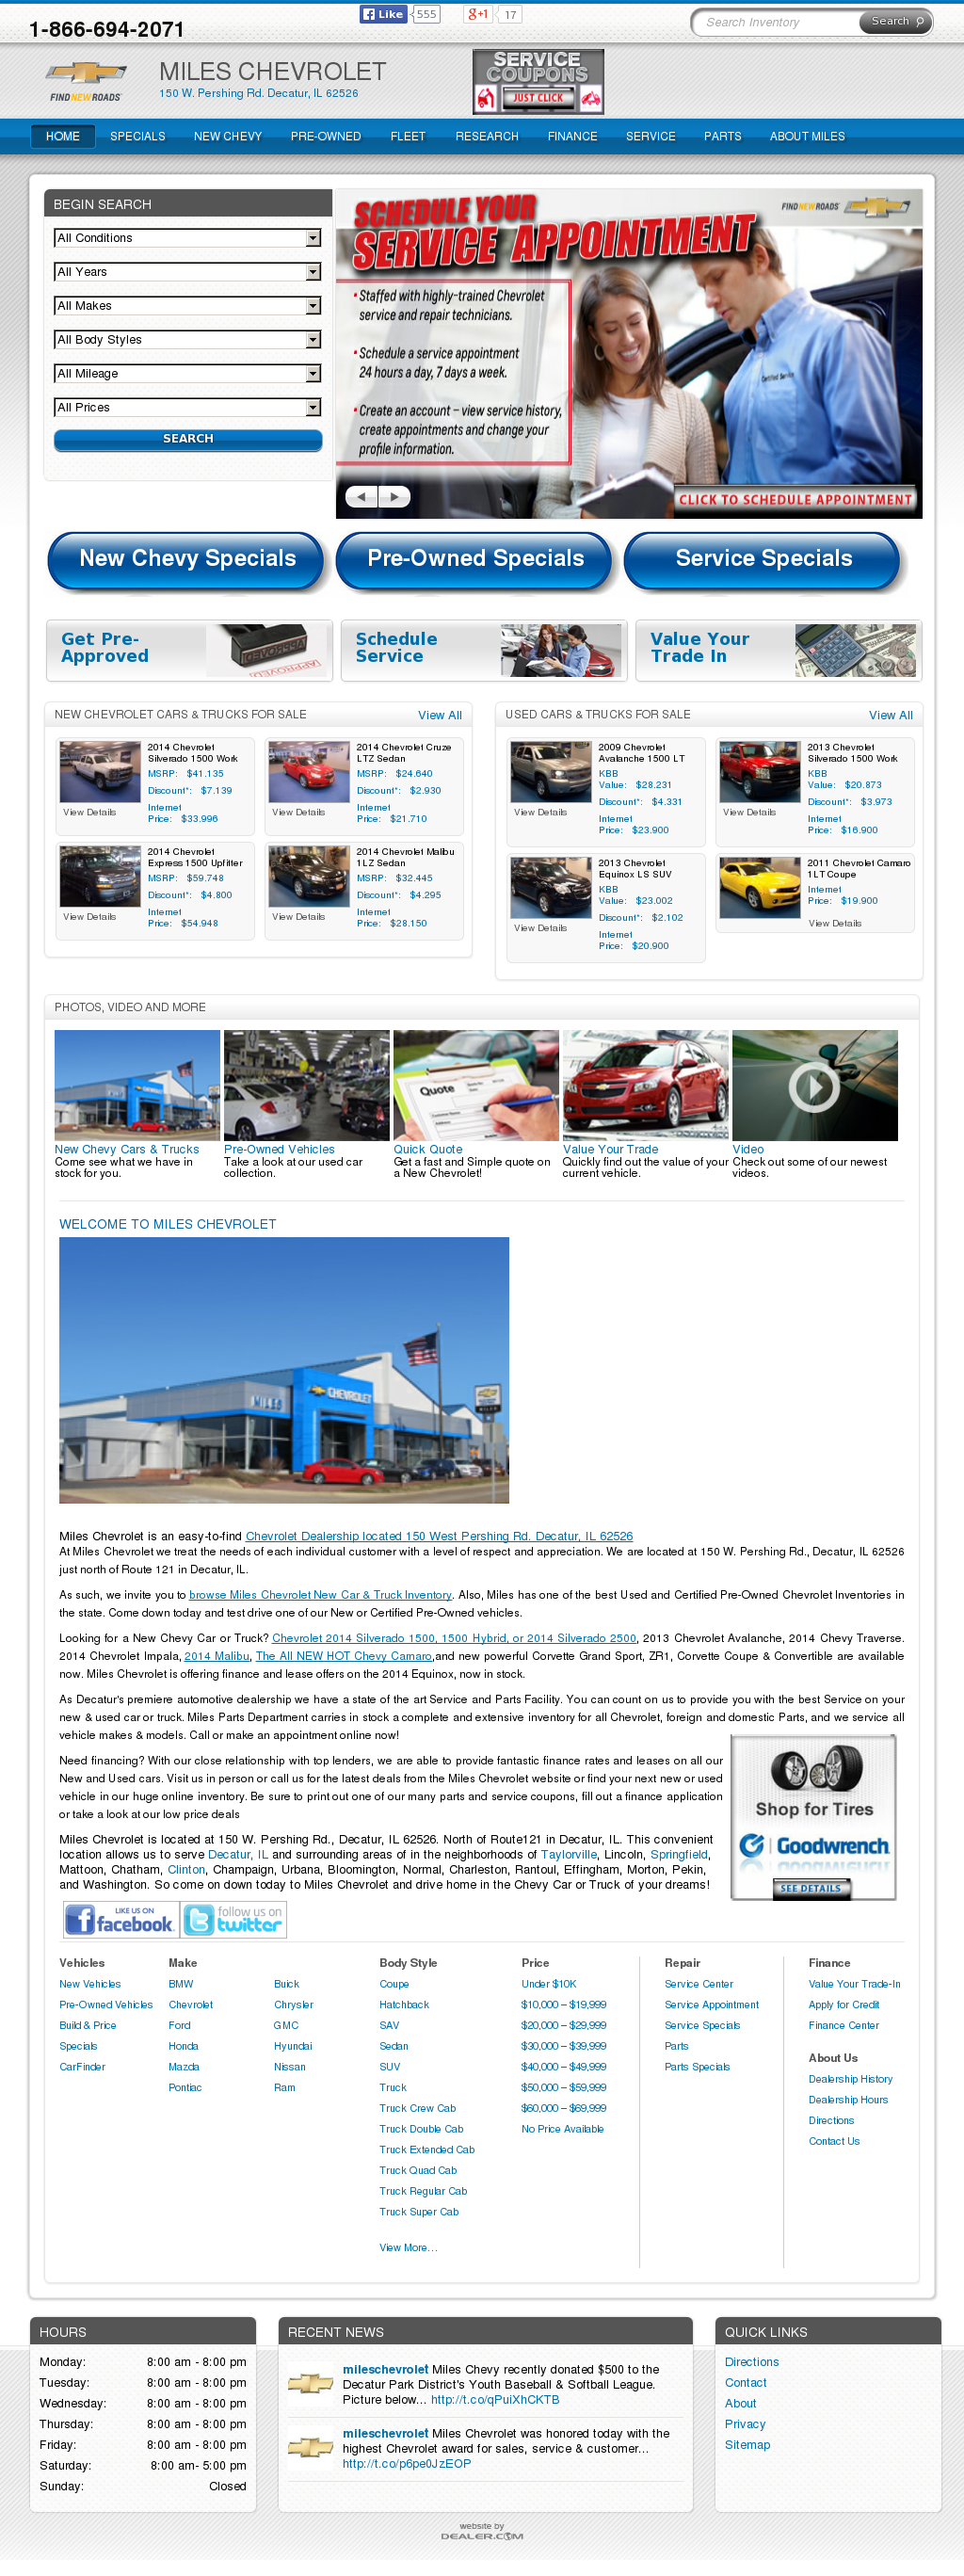 decatur repair service in full repairpal best shops and il chevrolet illinois arthur miles atwood